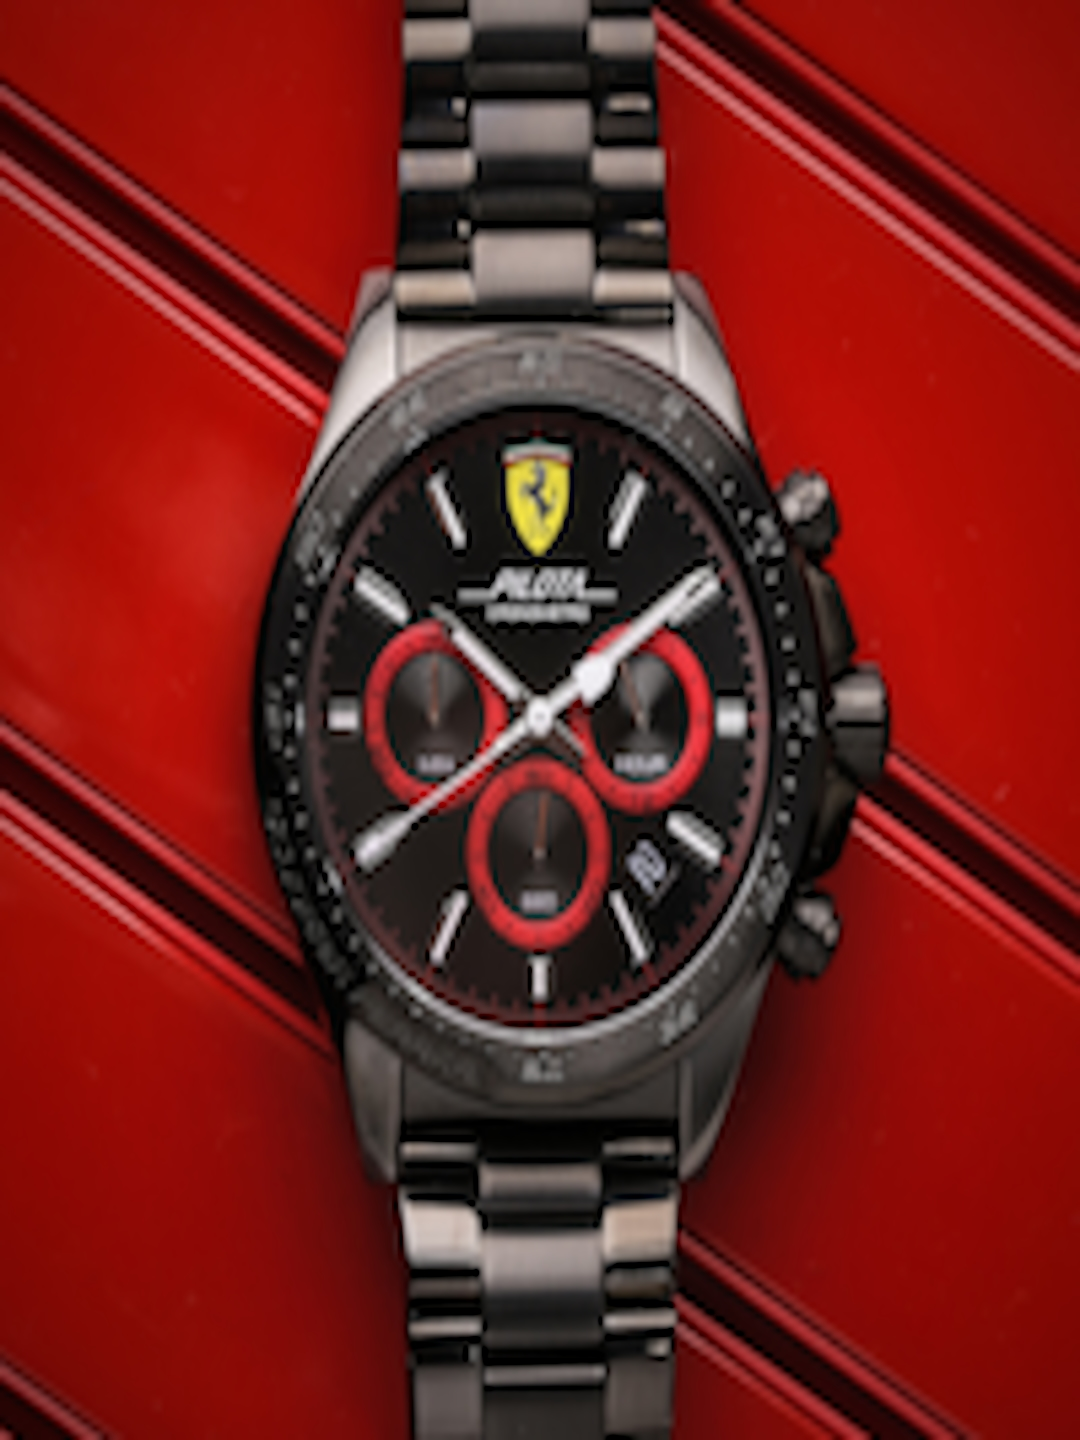 watch replica cheap ferrari watches men luxury brands for s wholesale fake